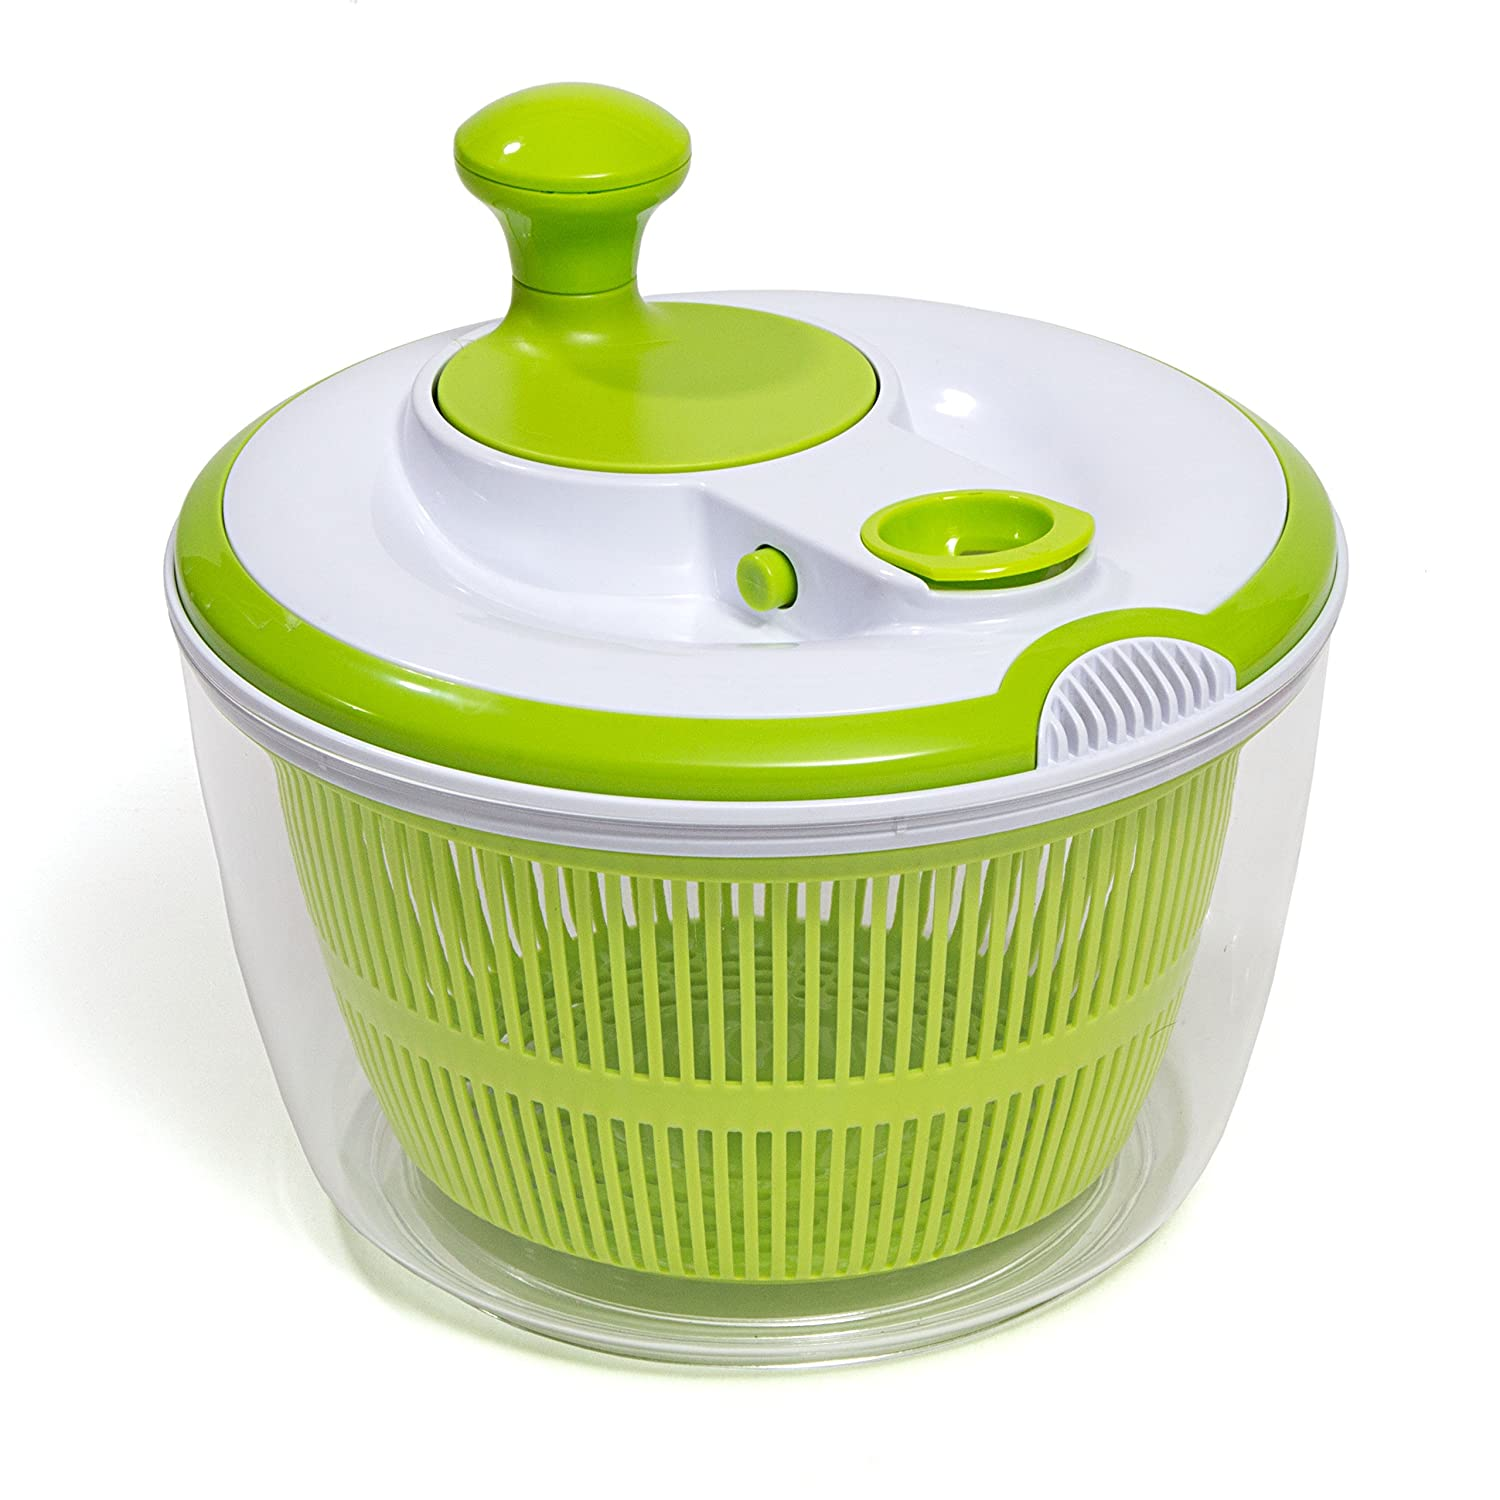 HULLR Premium Salad Spinner with Dressing/Oil Spout & Drainer BPA Free HÜLLR HSS-G100